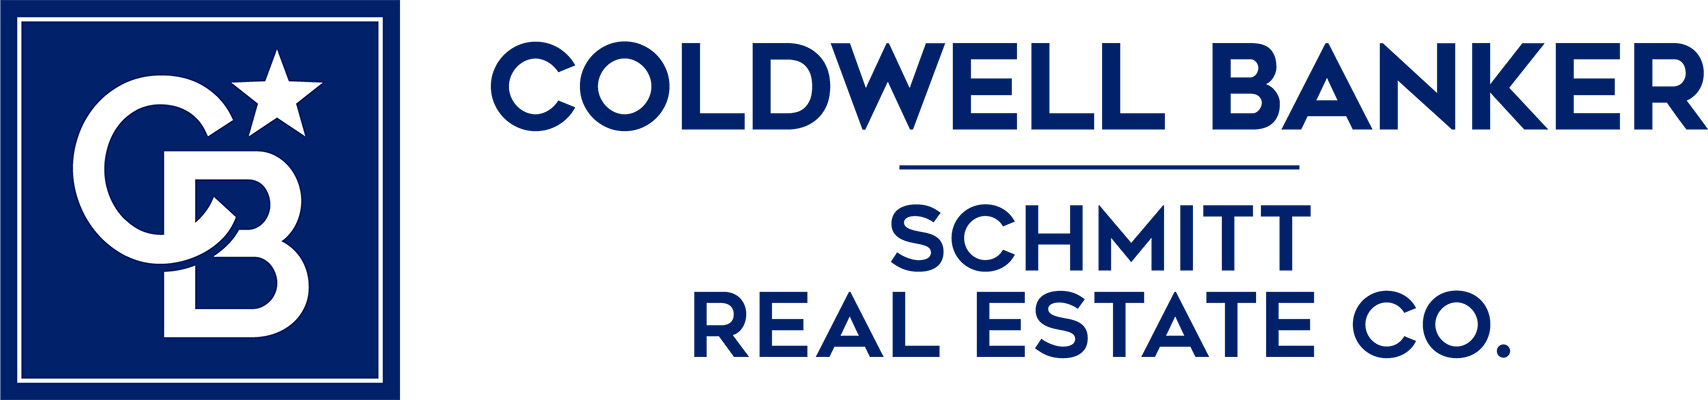 Mary Herbenick - Coldwell Banker Logo